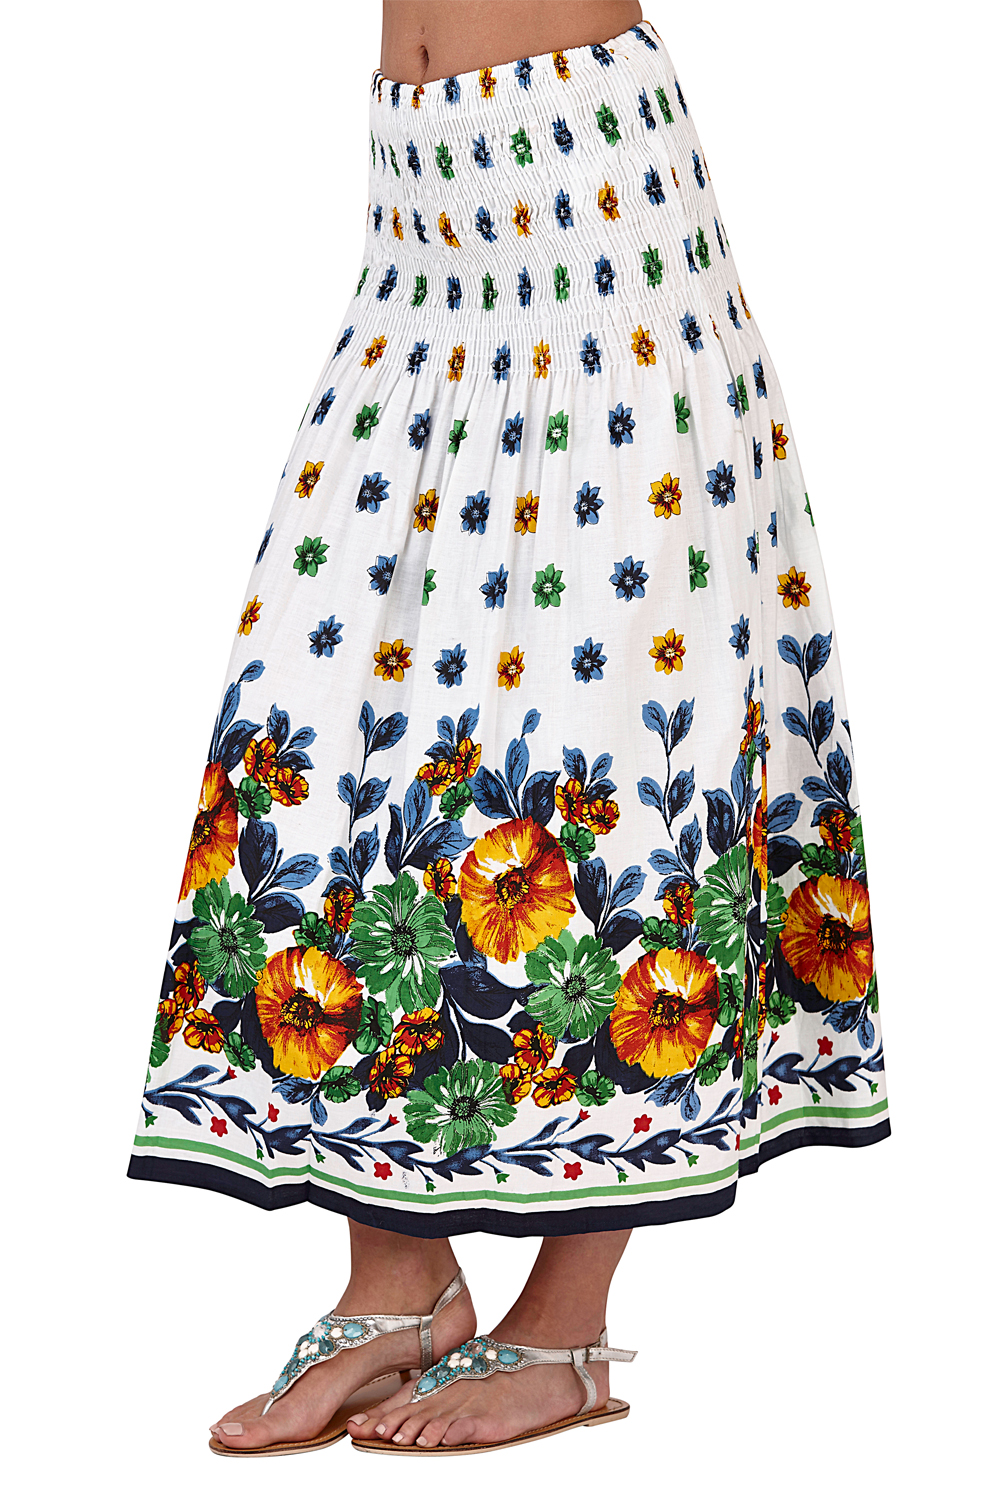 Pistachio-Womens-Patterned-3-In-1-Dresses-Ladies-New-Cotton-Summer-Beach-Skirts thumbnail 11